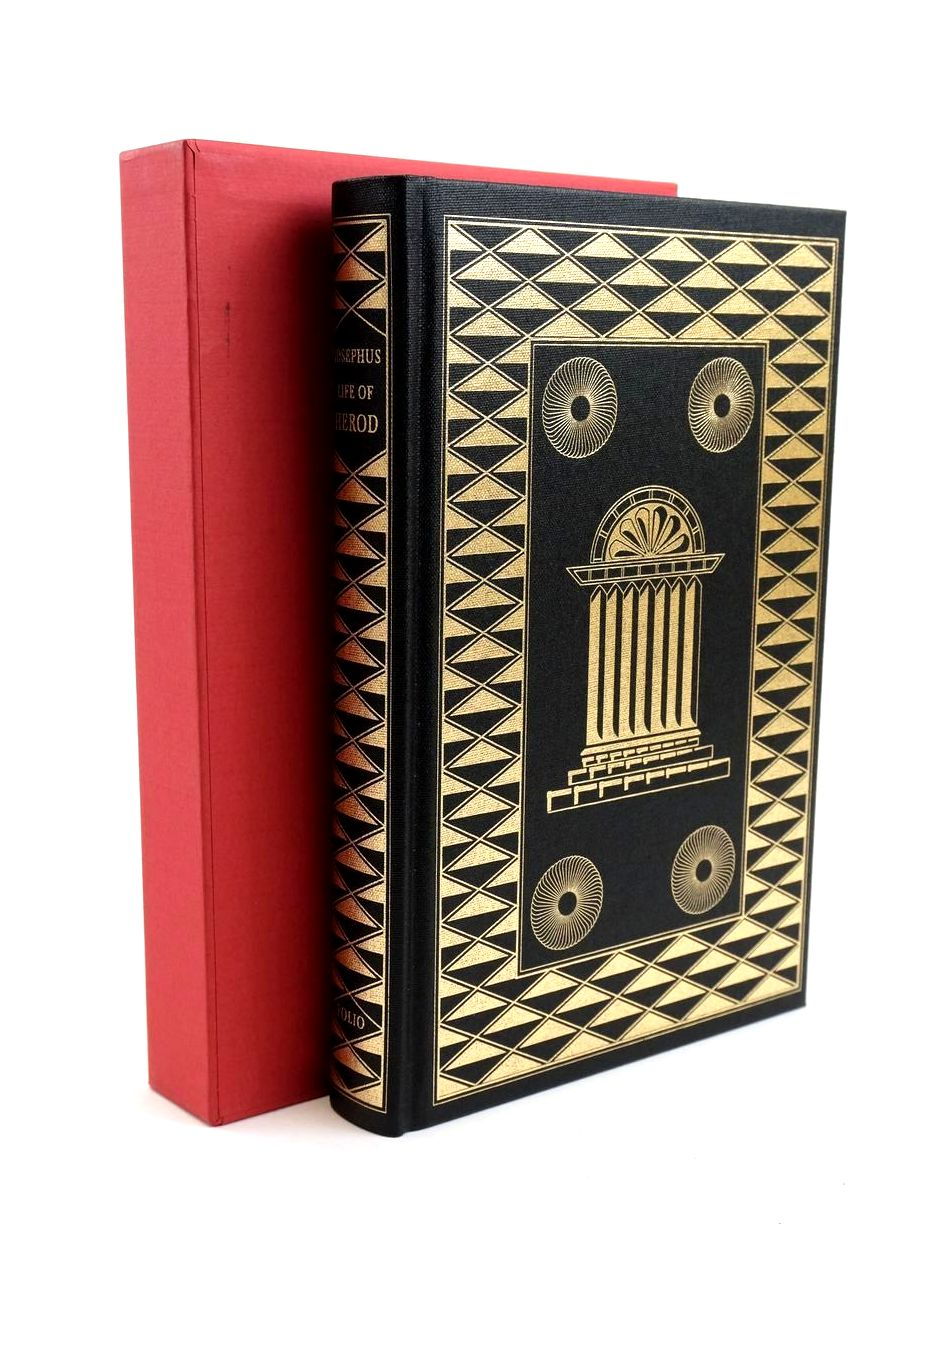 Photo of LIFE OF HEROD written by Josephus,  Gregory, John published by Folio Society (STOCK CODE: 1321543)  for sale by Stella & Rose's Books